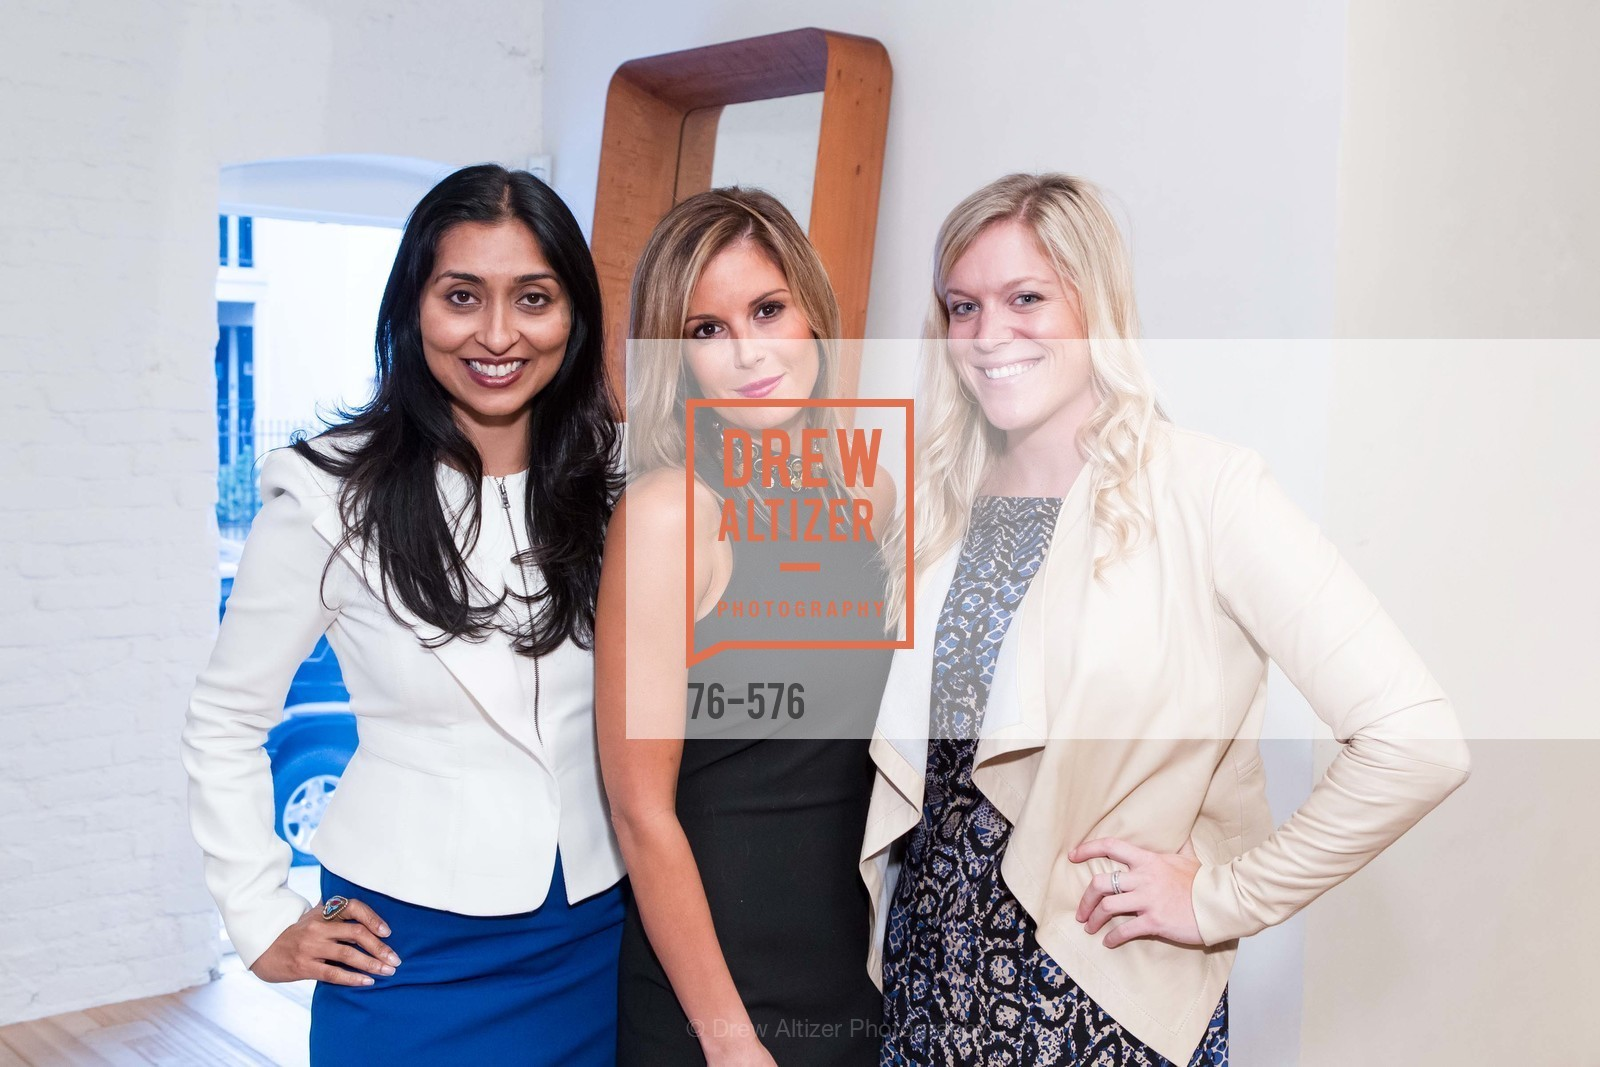 Smrithi Prabhu, Tara Loller, Merritt Fog, SF FALL ANTIQUES SHOW Designer's Circle Cocktail Party at HEWN, US, September 23rd, 2014,Drew Altizer, Drew Altizer Photography, full-service event agency, private events, San Francisco photographer, photographer California